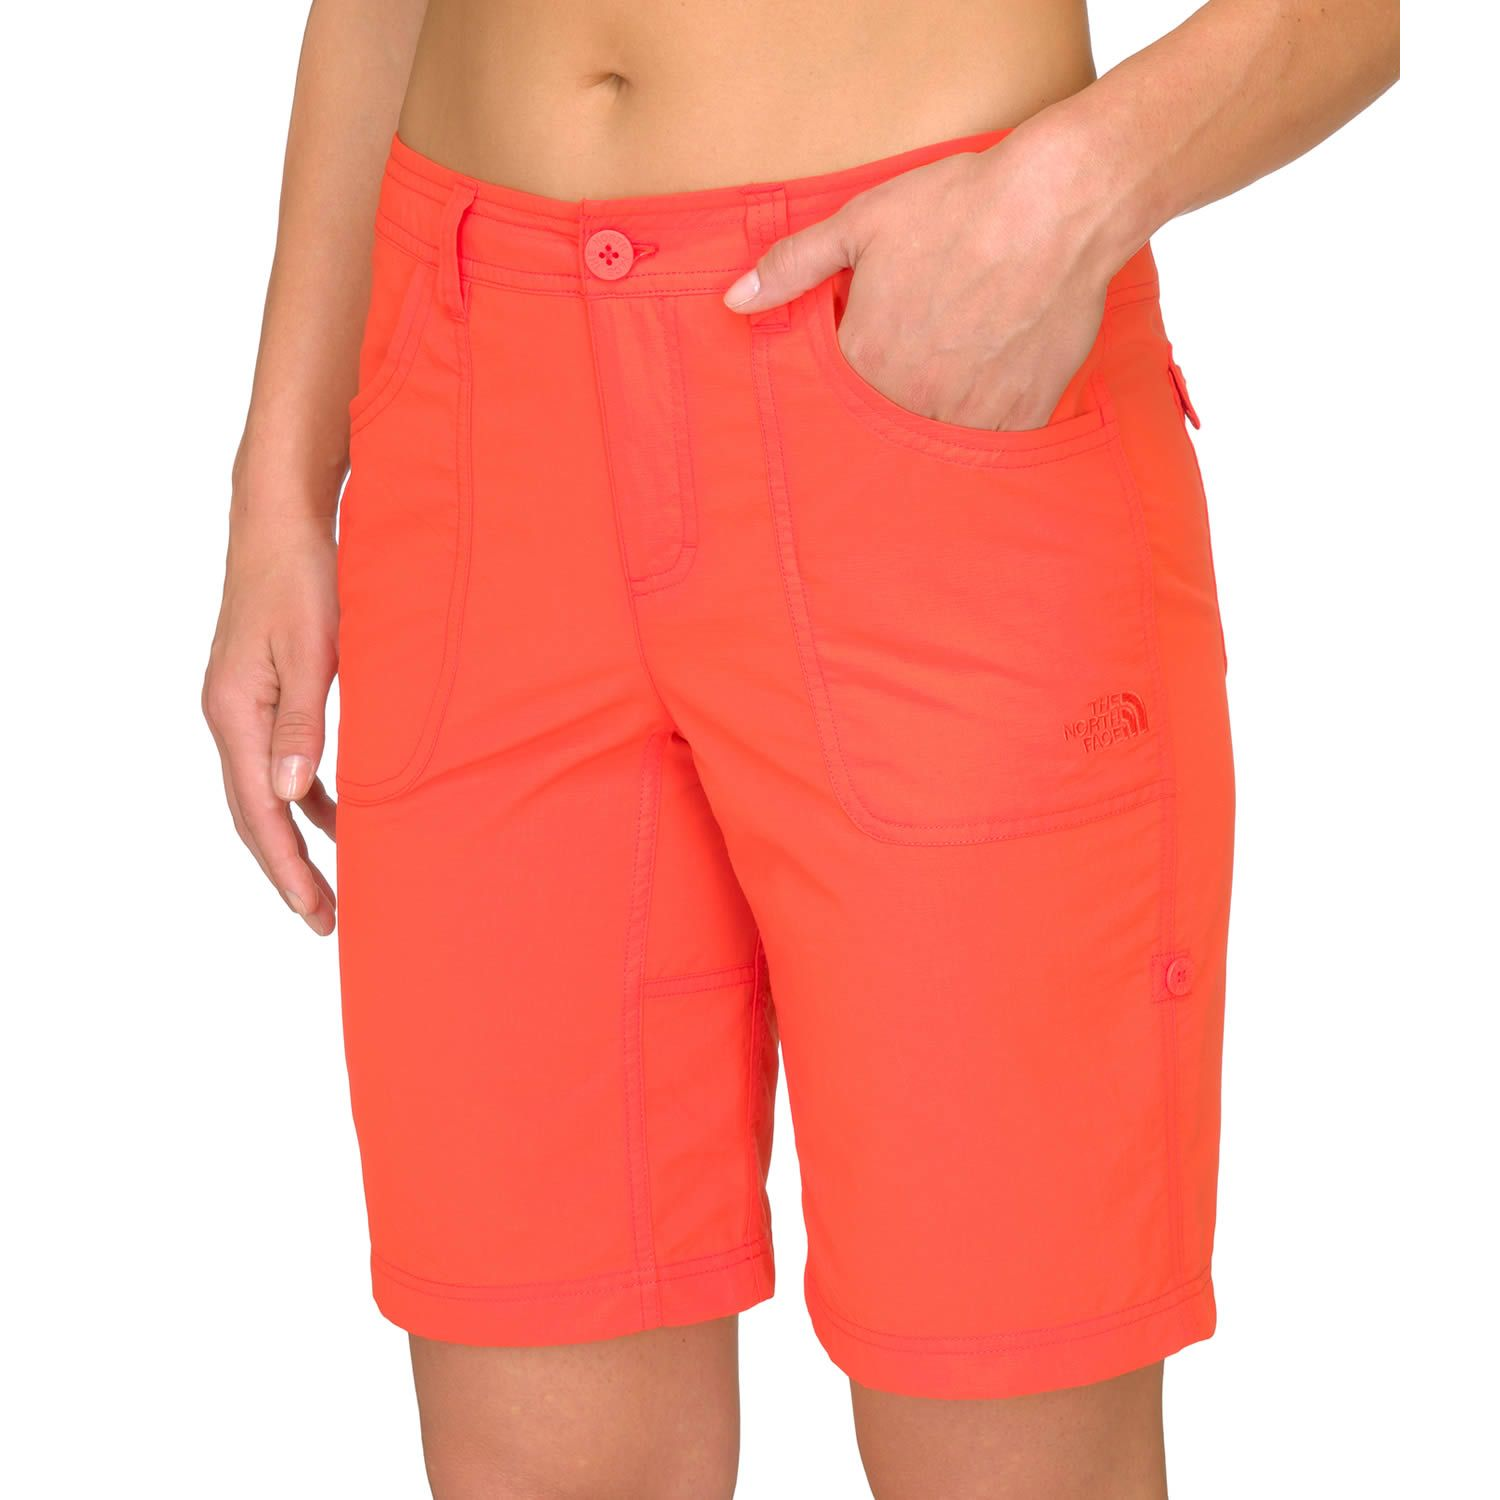 north face shorts womens orange the north face sale u0026 clearance